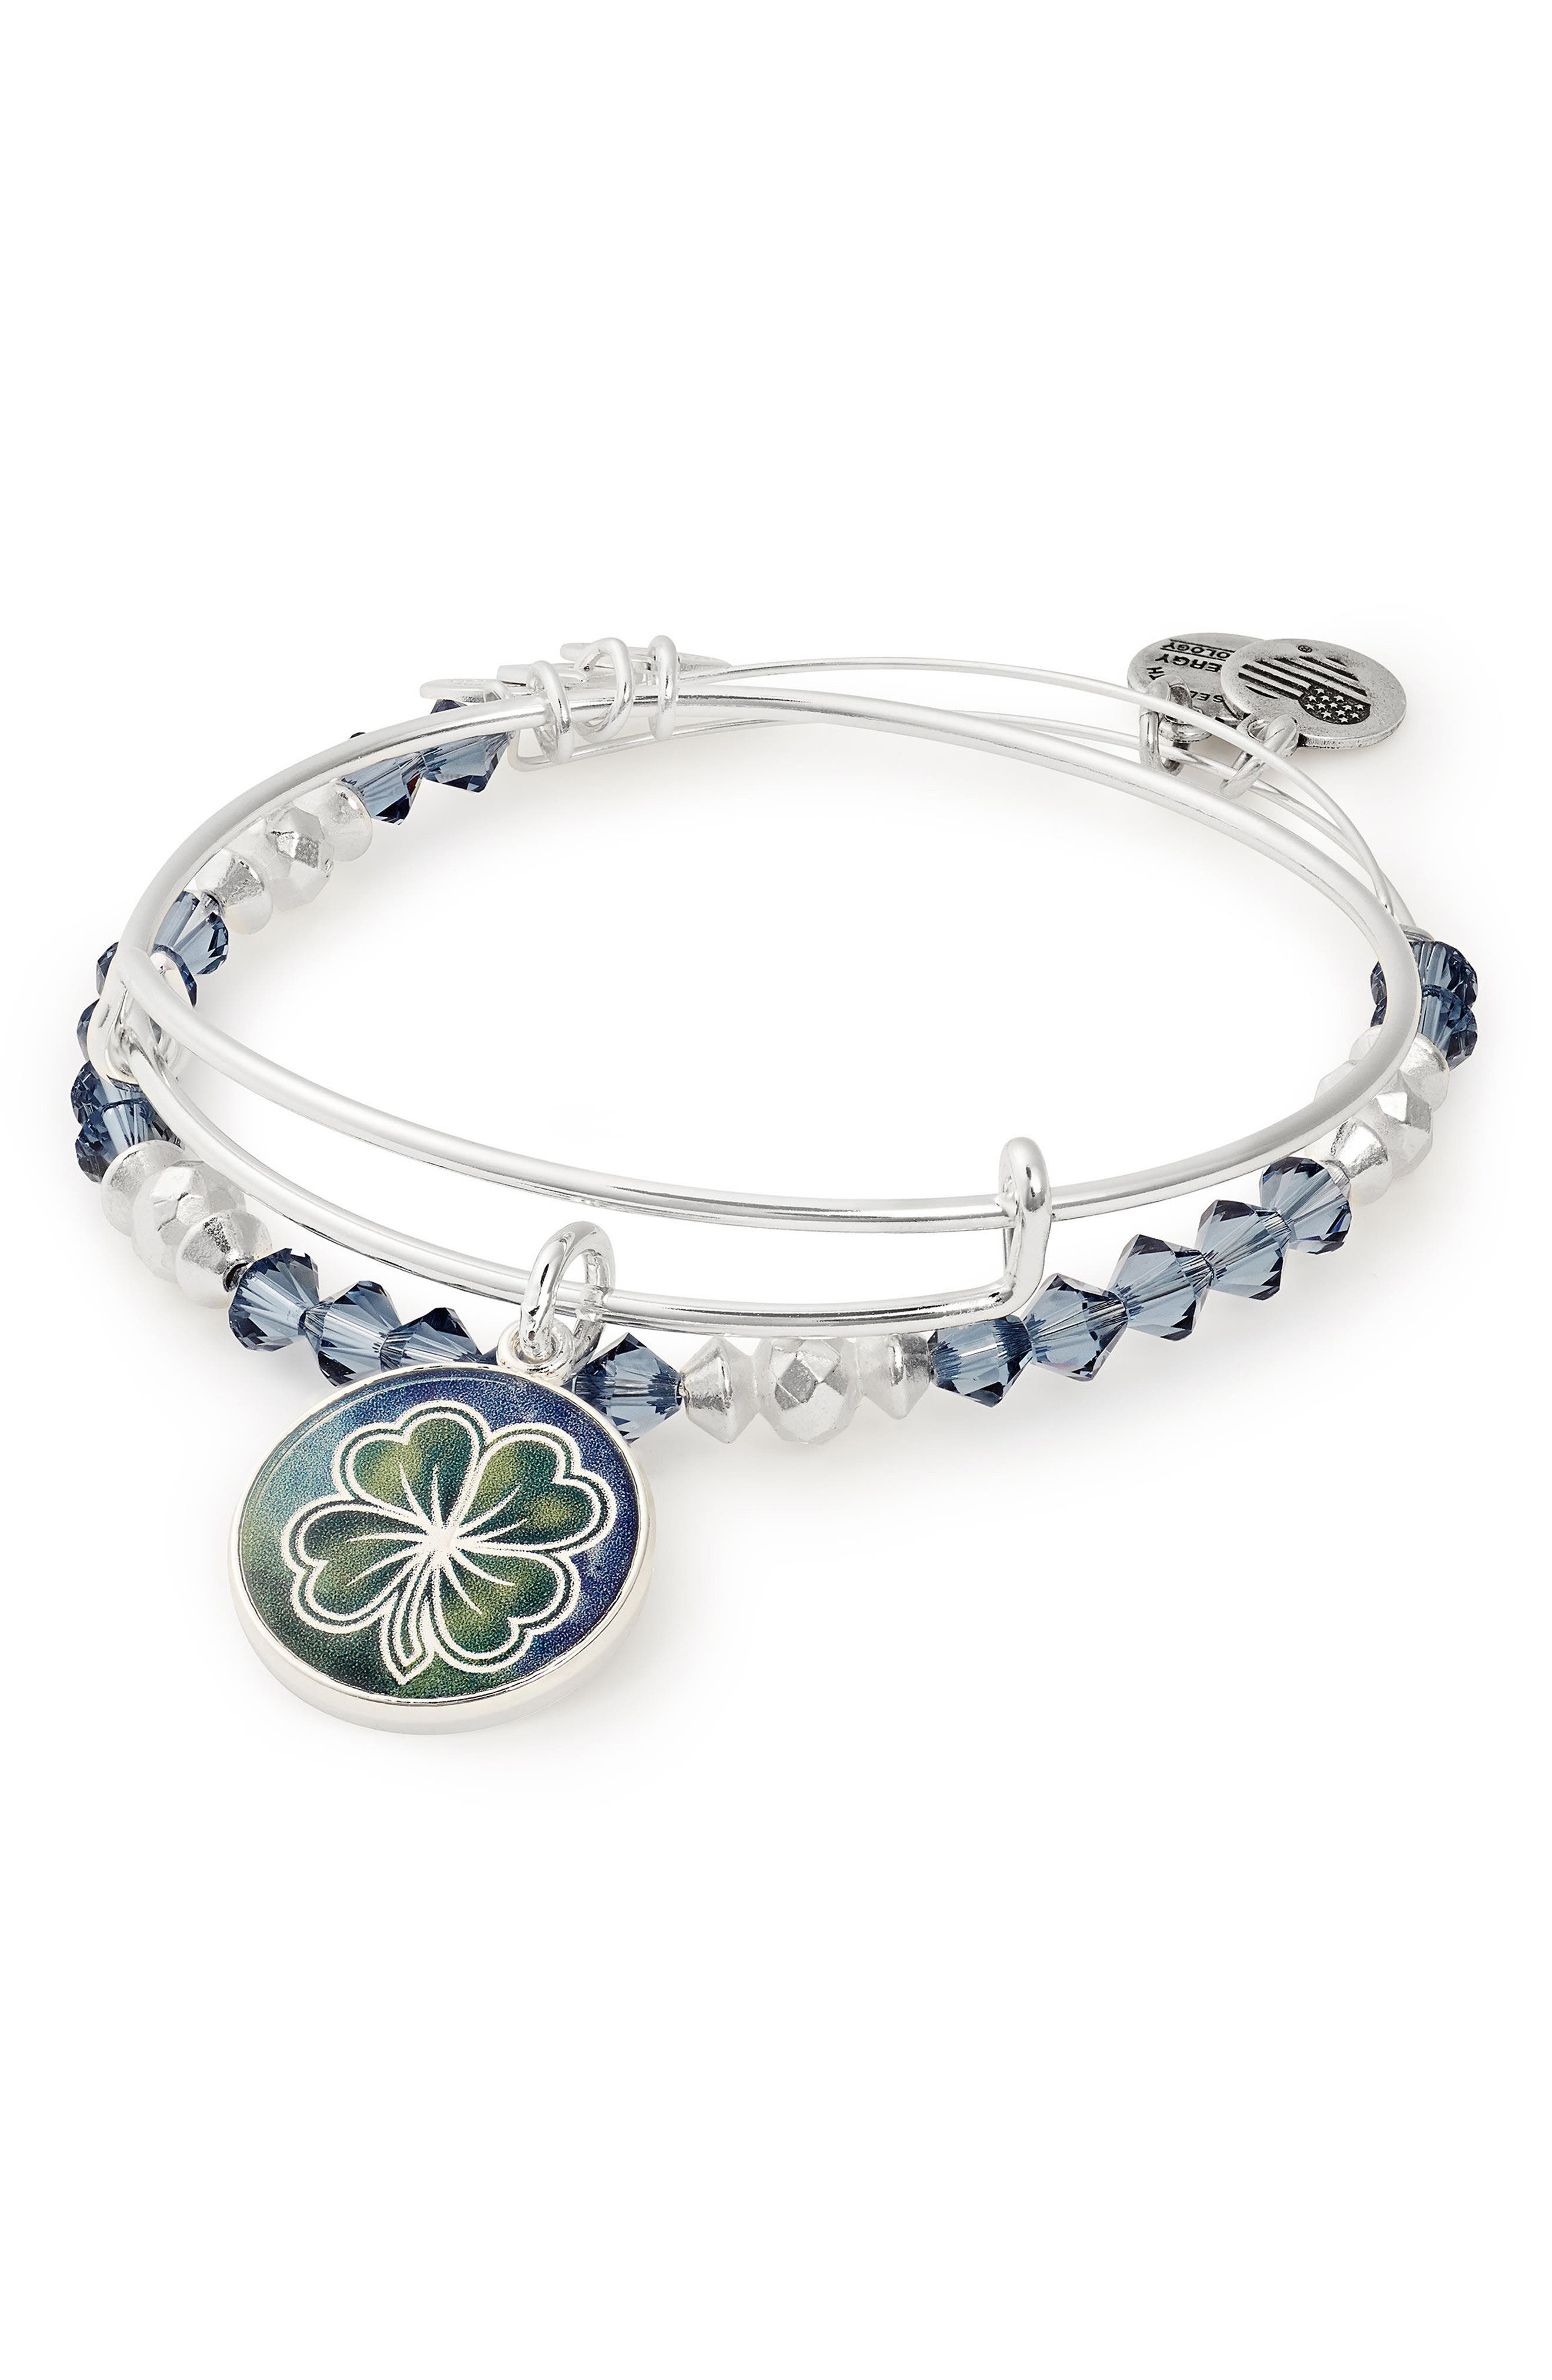 Four-Leaf Clover Art Infusion Set of 2 Bangles,                             Main thumbnail 1, color,                             Silver